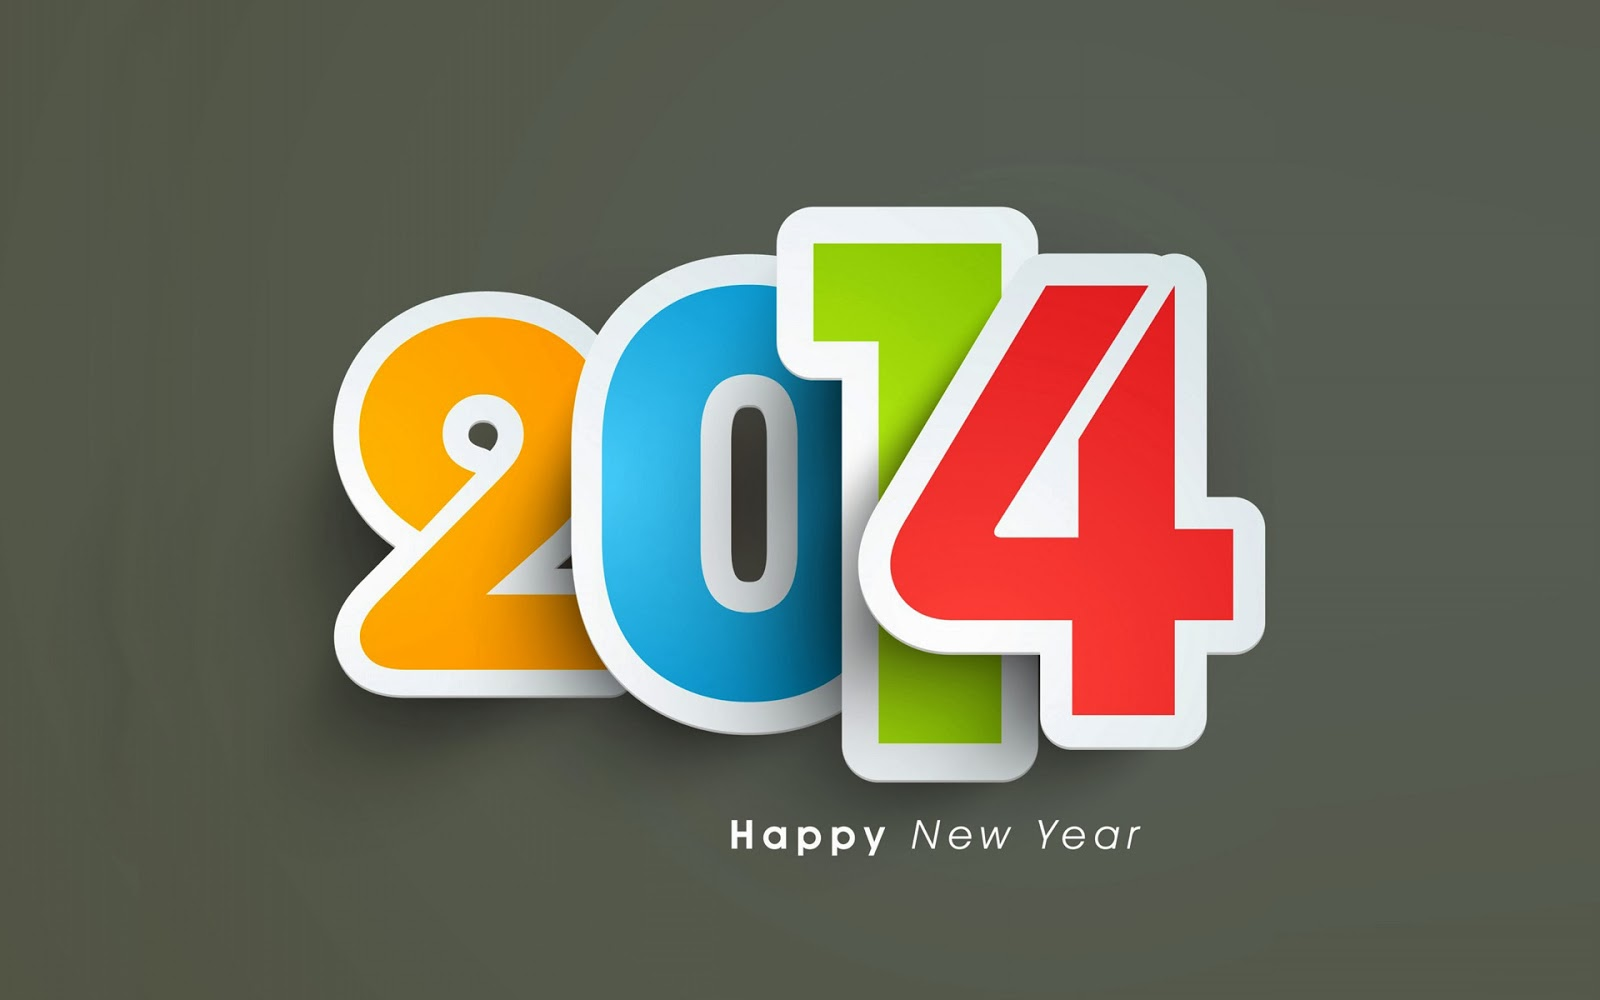 2014 wallpapers hd wallpapers 2014 new year 3d fresh wallpaper voltagebd Image collections